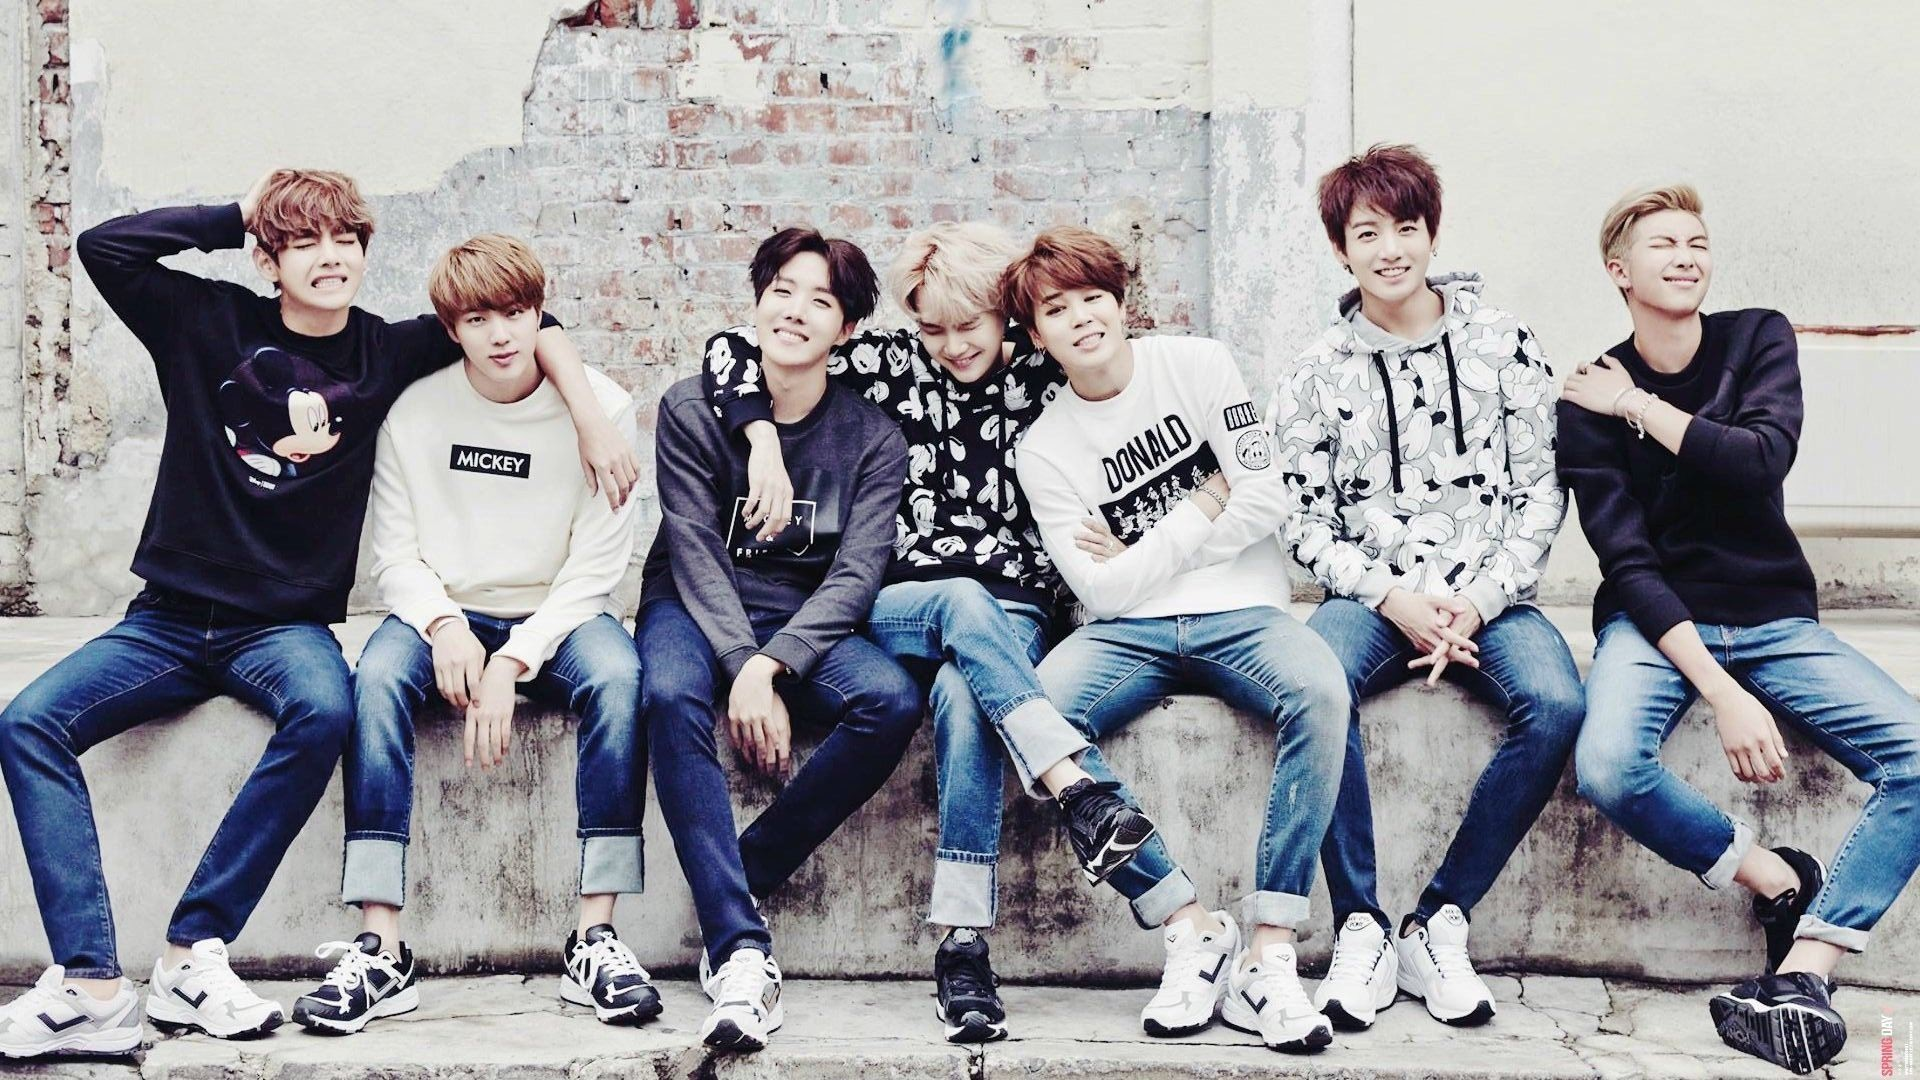 BTS Wallpaper HD 67 images 1920x1080